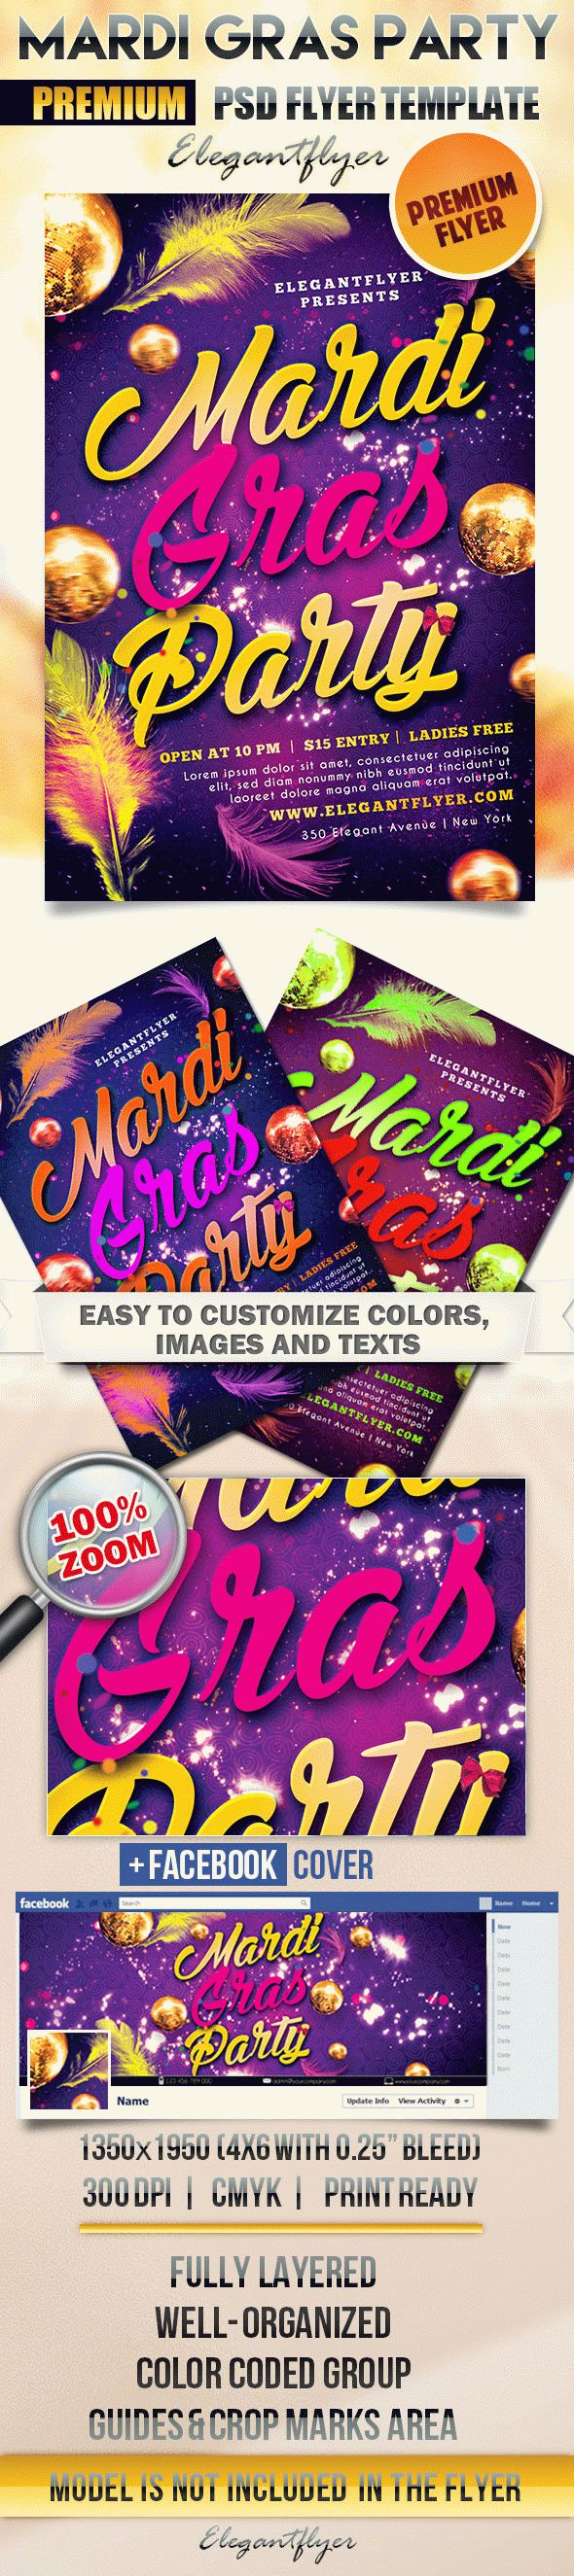 Mardi Gras Themed Party PSD Template